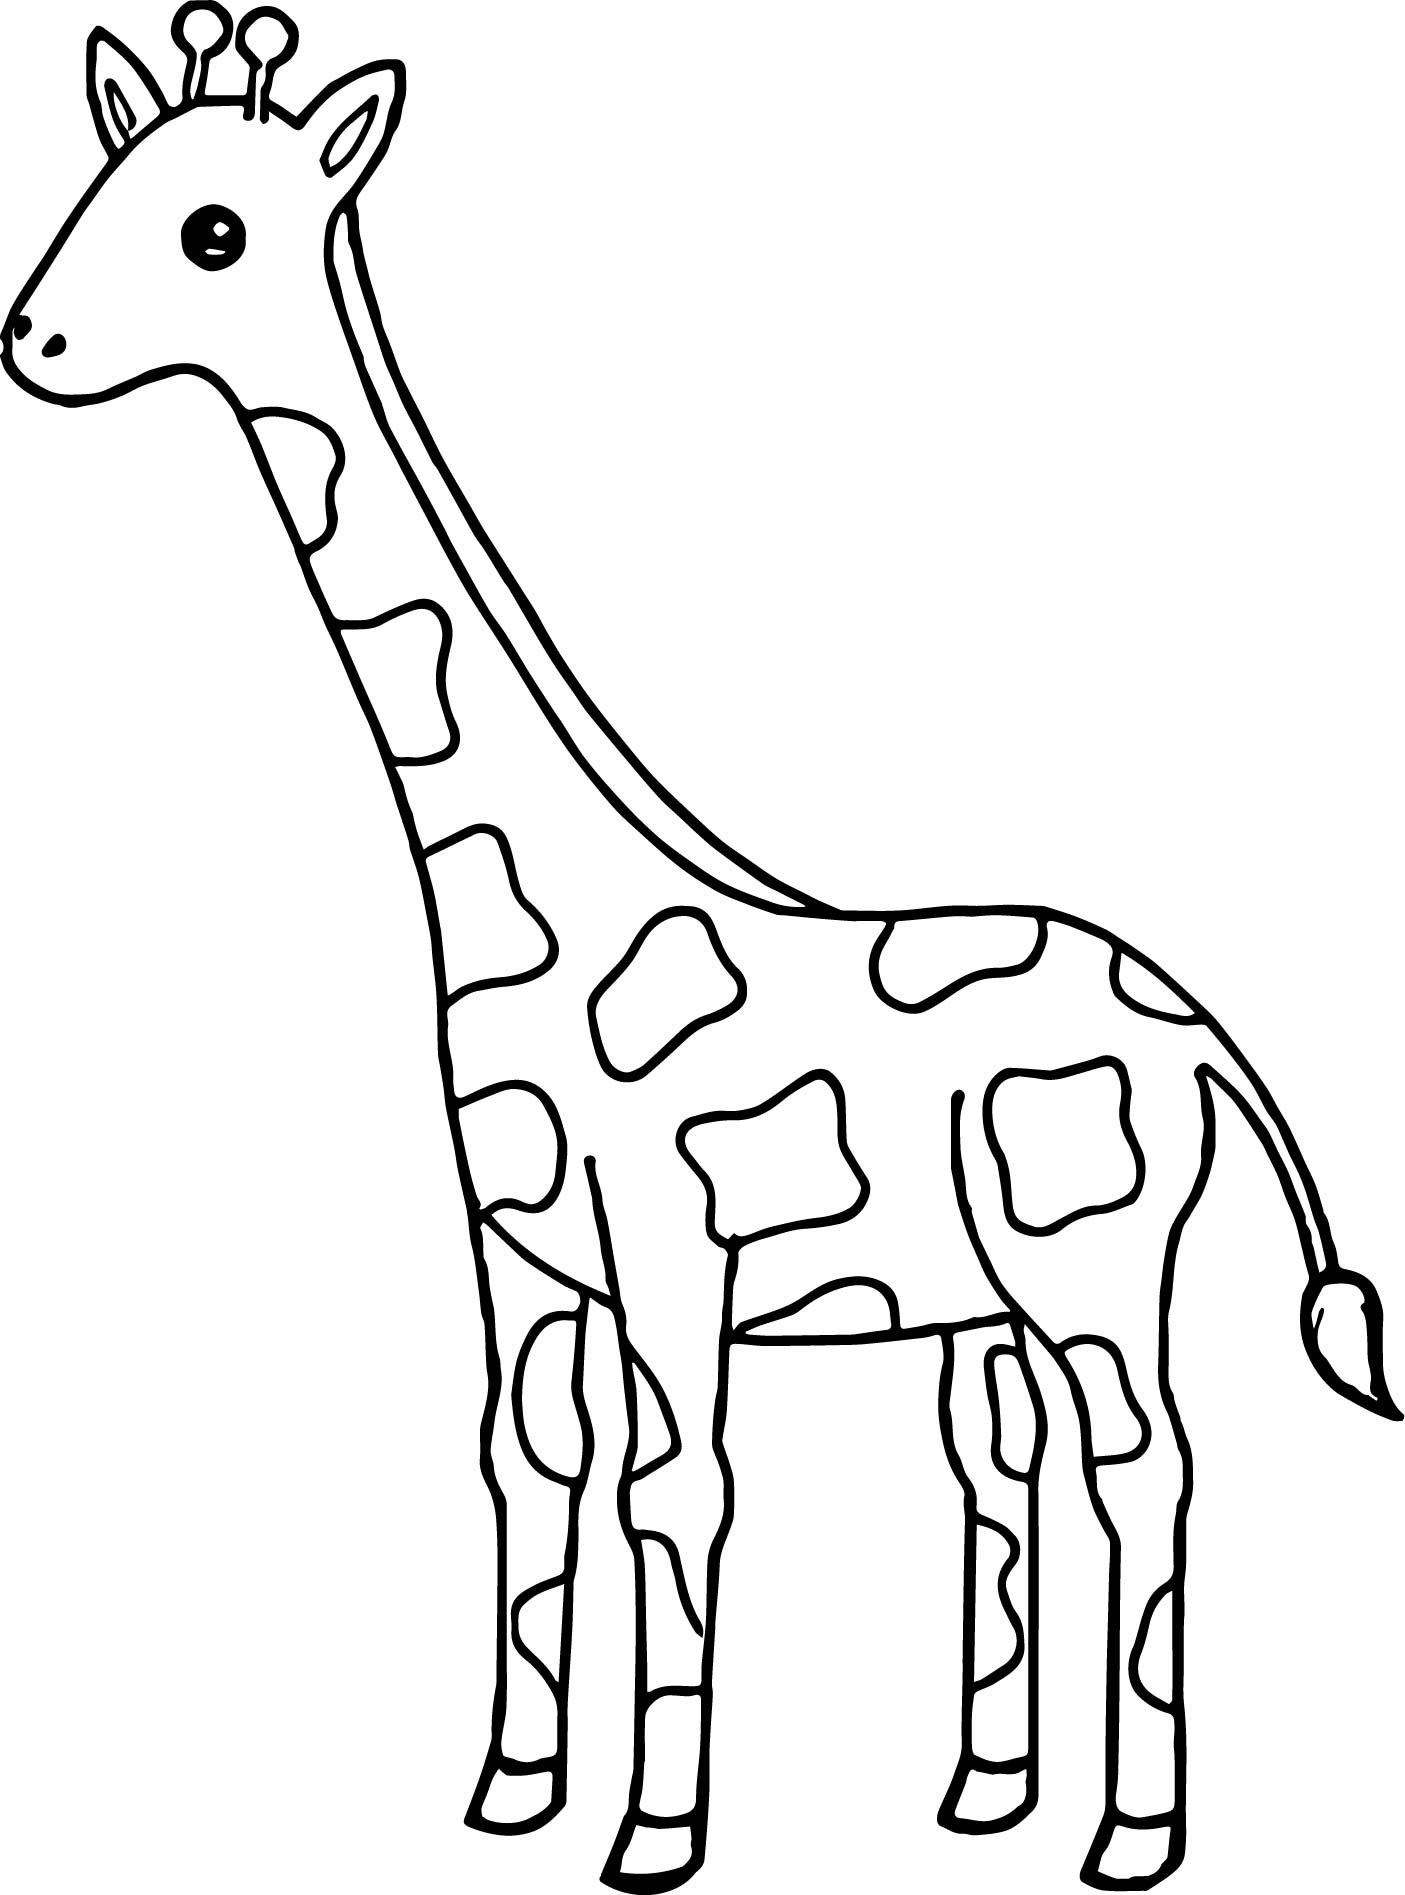 colouring pages of giraffe print download giraffe coloring pages for kids to have fun giraffe pages colouring of